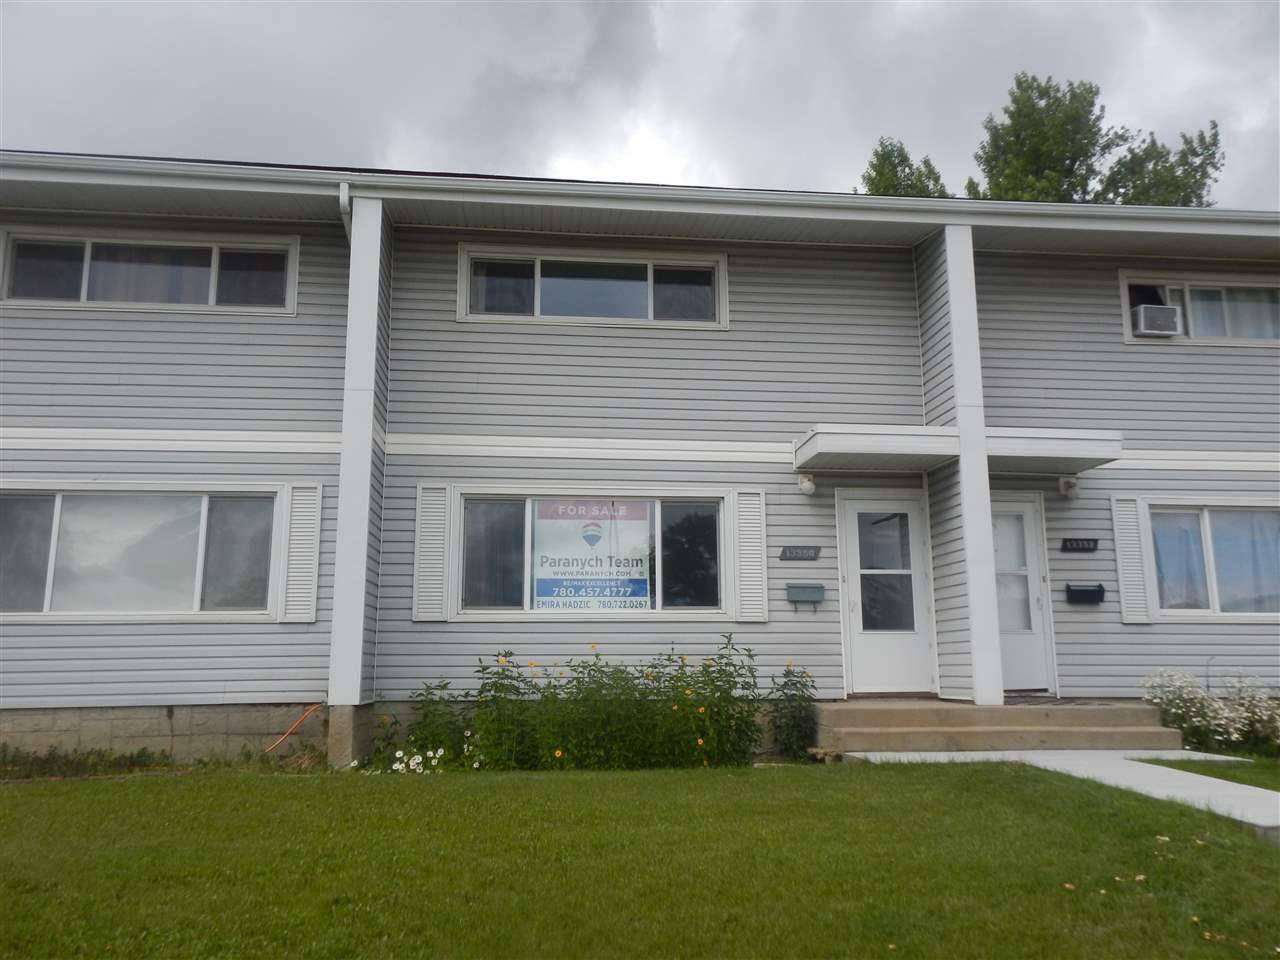 Townhouse for sale at 13350 113a St Nw Edmonton Alberta - MLS: E4164772